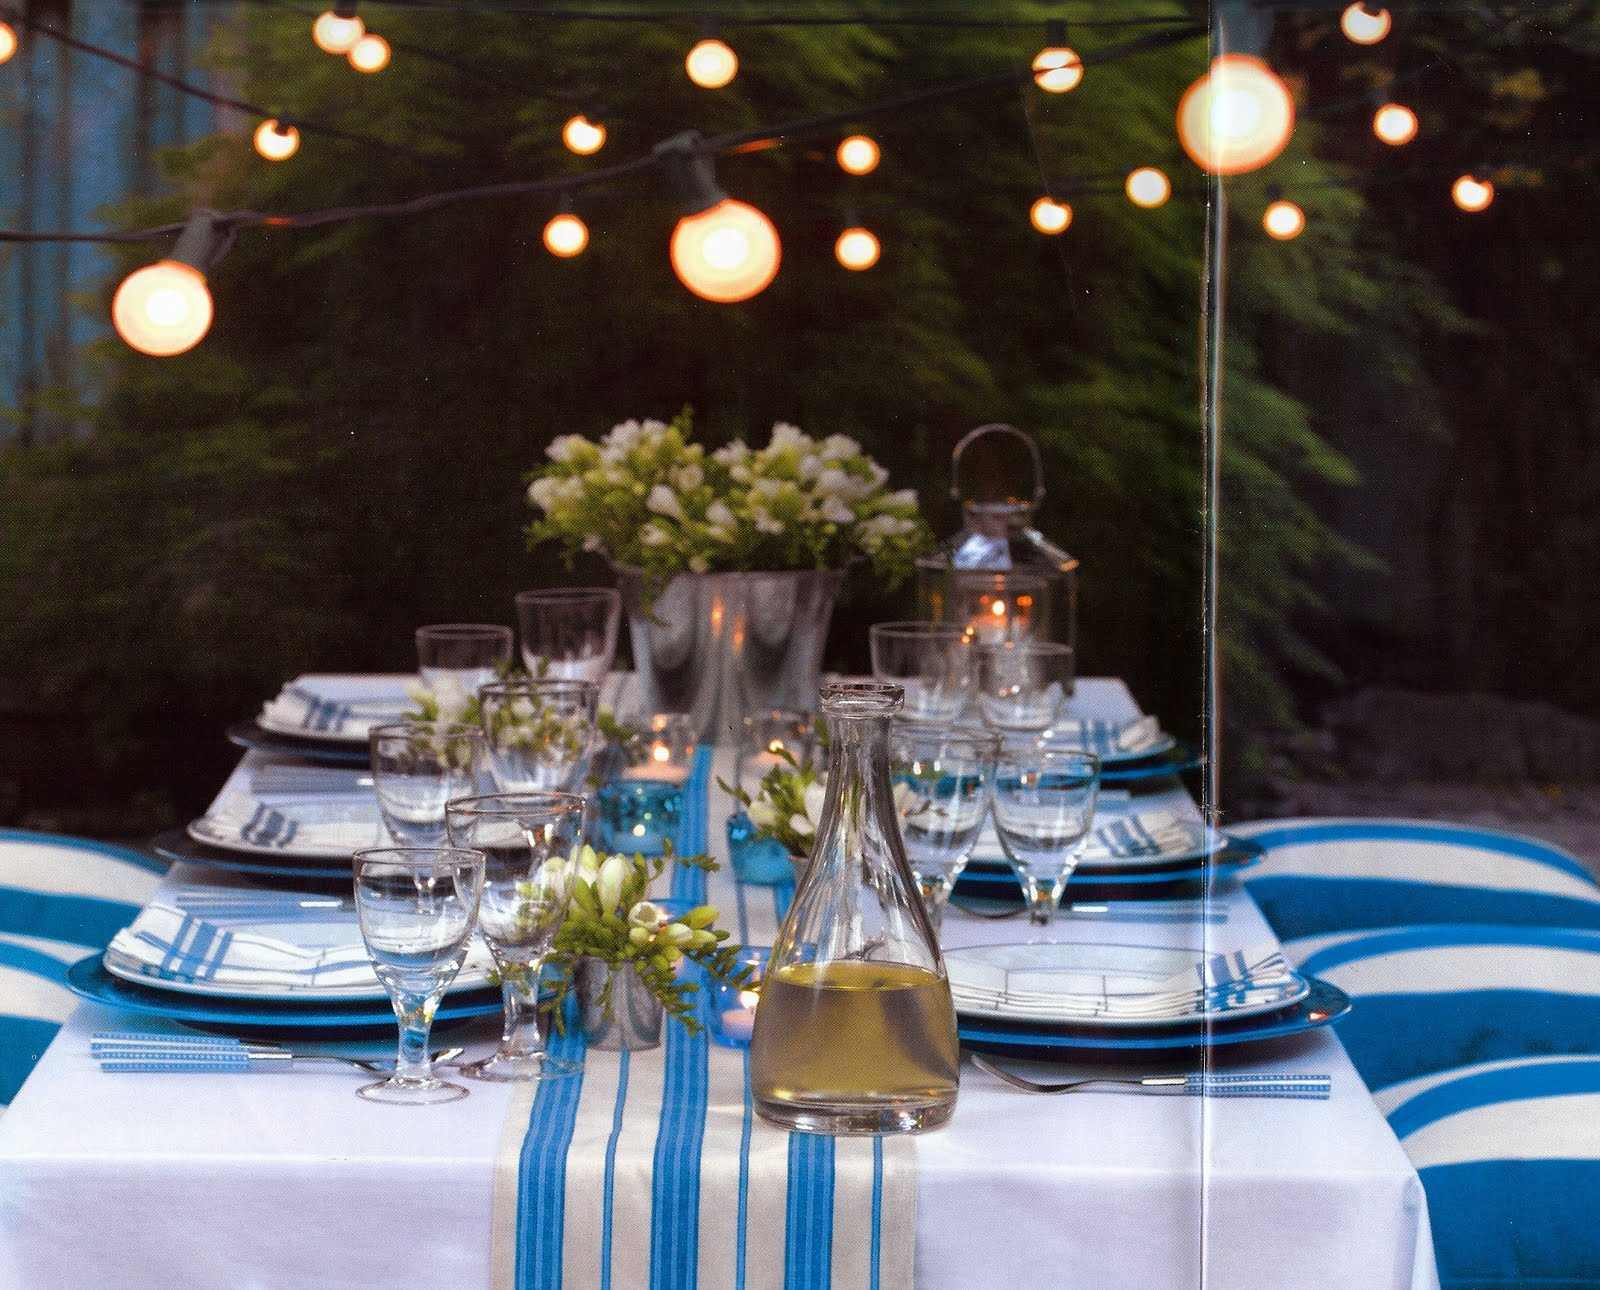 7 quick ideas for outdoor decorating guest post for Patio table centerpiece ideas